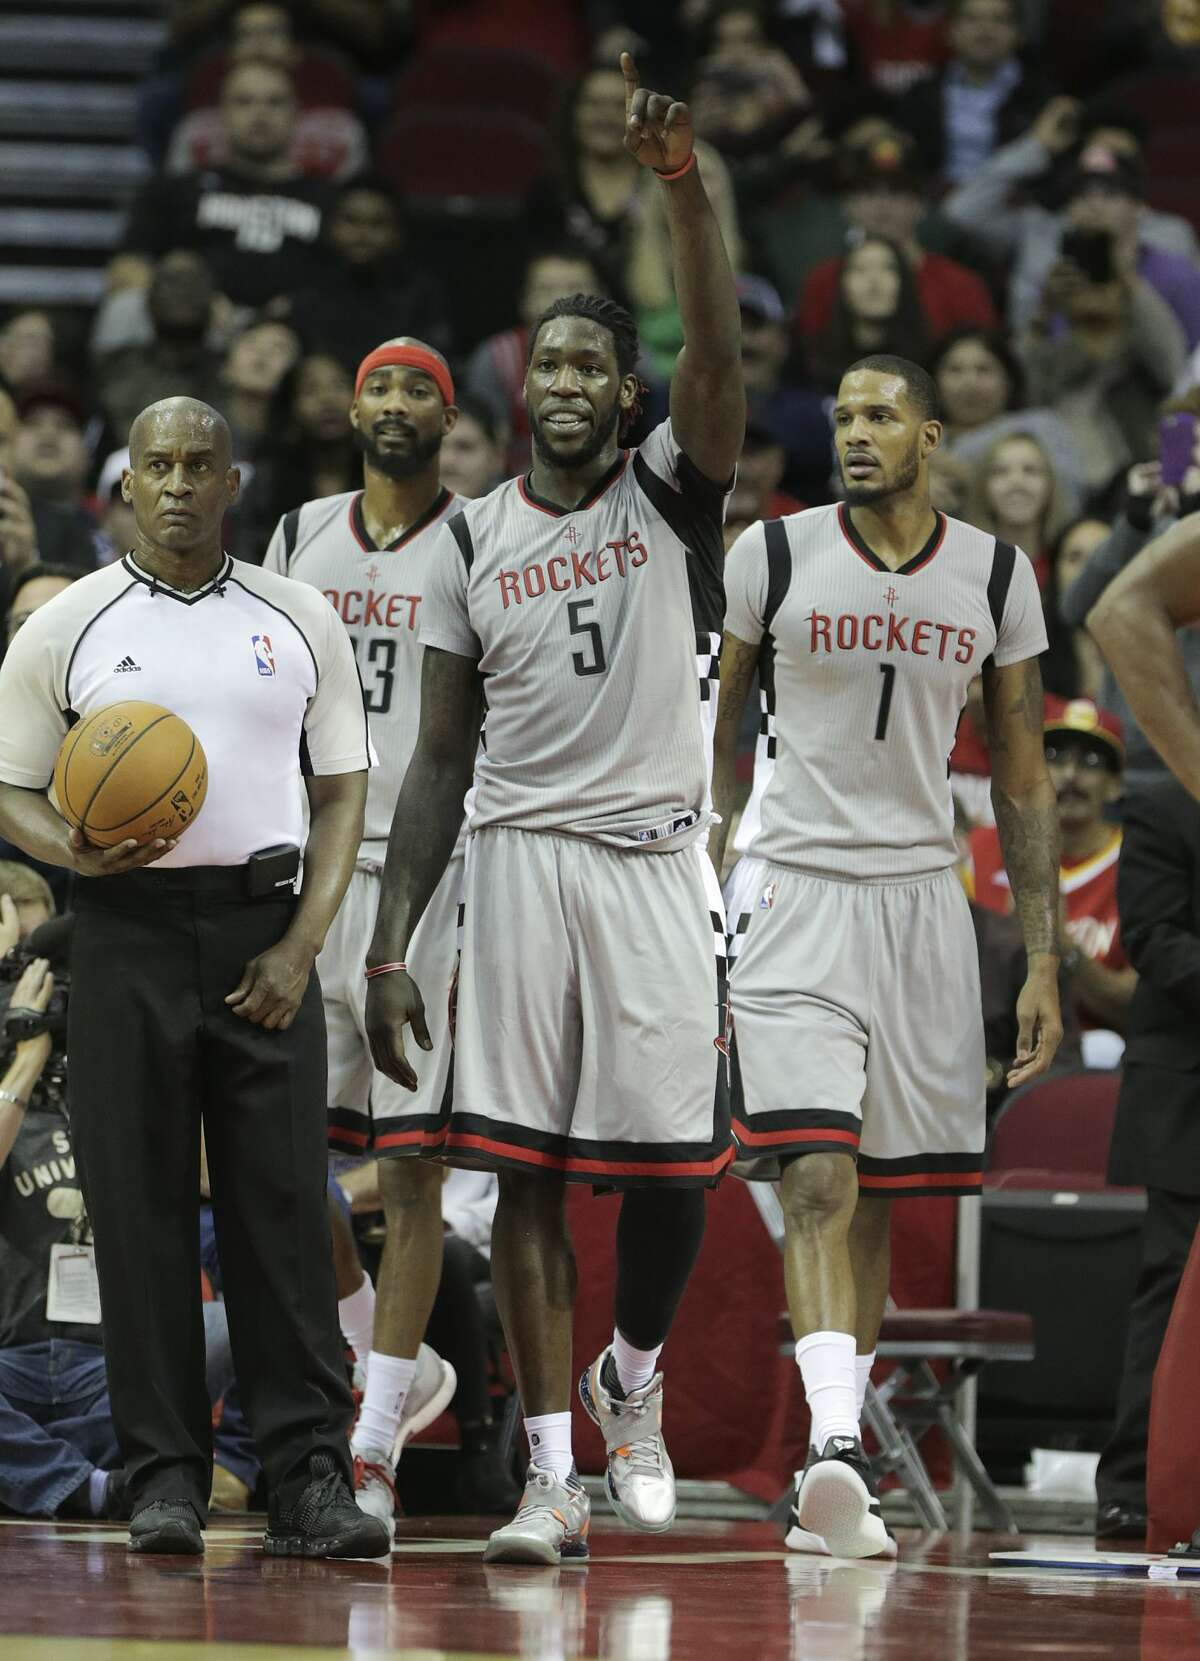 Houston Rockets forward Montrezl Harrell (5) points to teammate James Harden (13) after Harden's assist to Harrell gave him a triple-double in the team's 140-116 win over the Los Angeles Clippers on Friday, Dec. 30, 2016, in Houston. Rockets won the game 140-116.( Elizabeth Conley / Houston Chronicle )